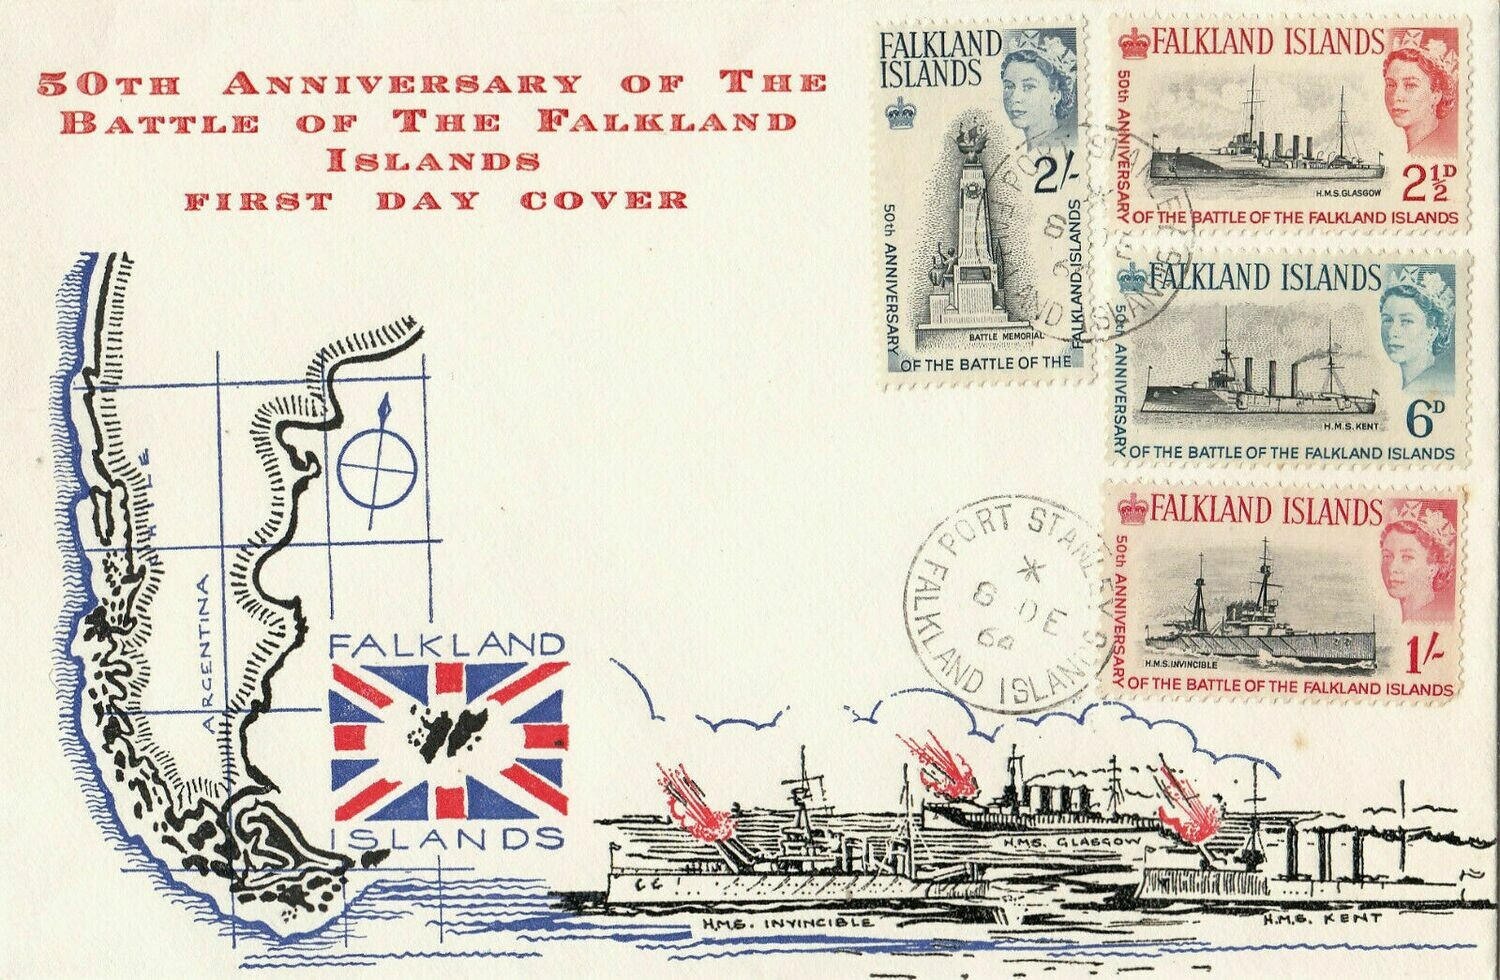 Falkland Islands 1964 50th Ann. of Battle of the Falklands FDC